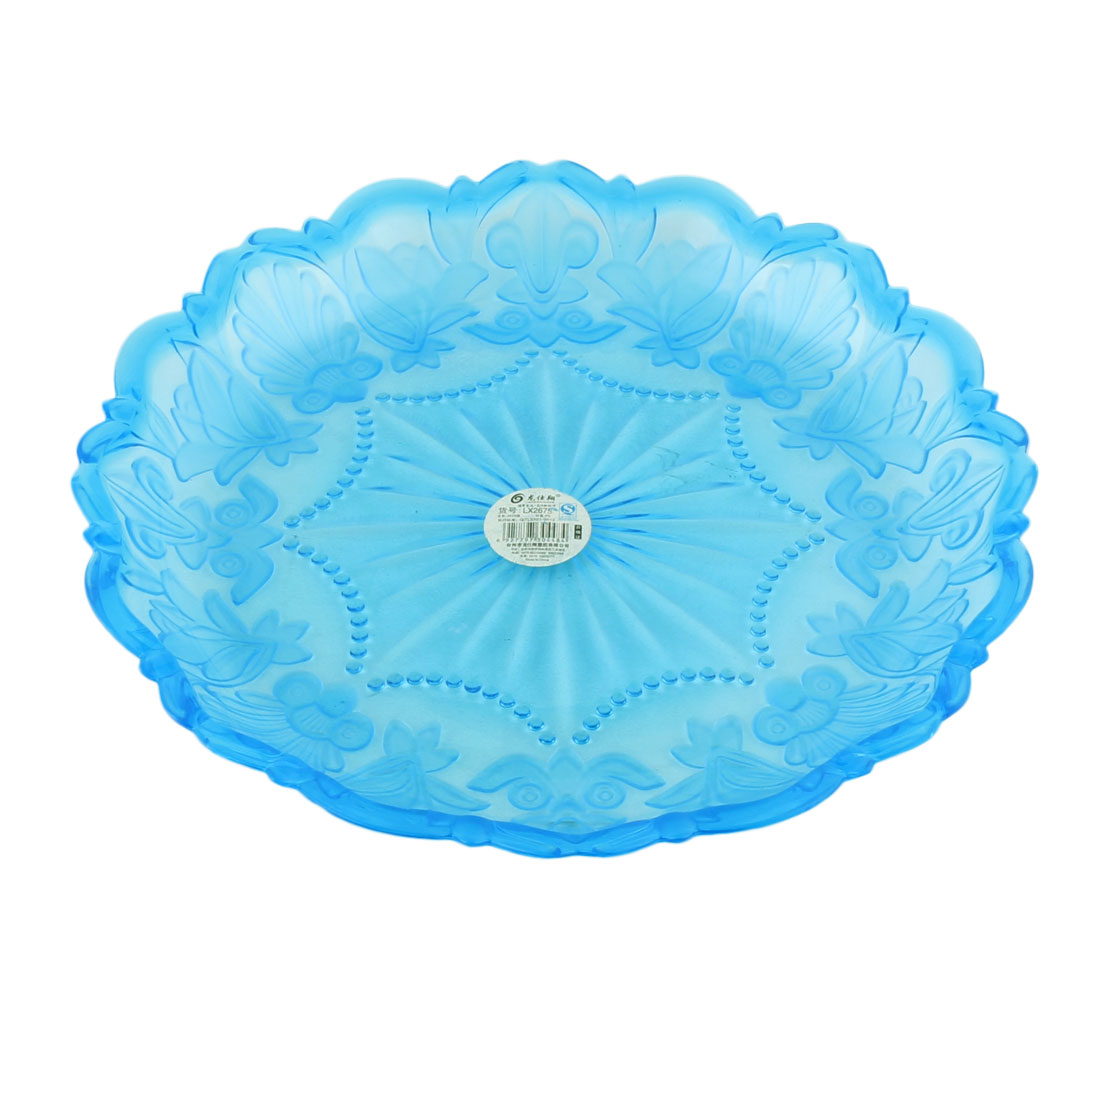 Household Plastic Flower Pattern Wave Edge Fruit Dessert Dish Plate Clear Blue by